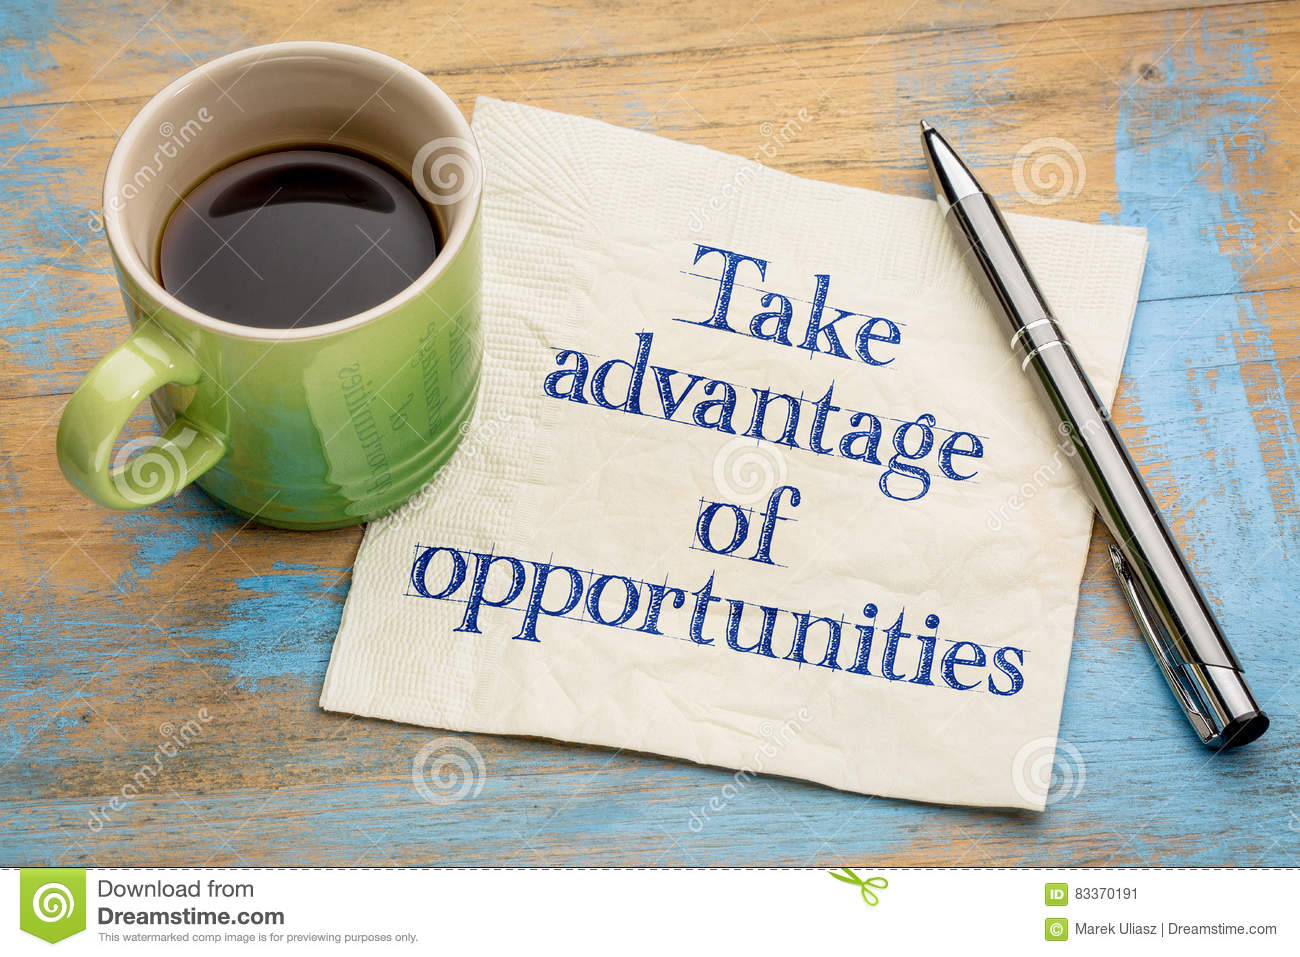 Take advantage of opportunities